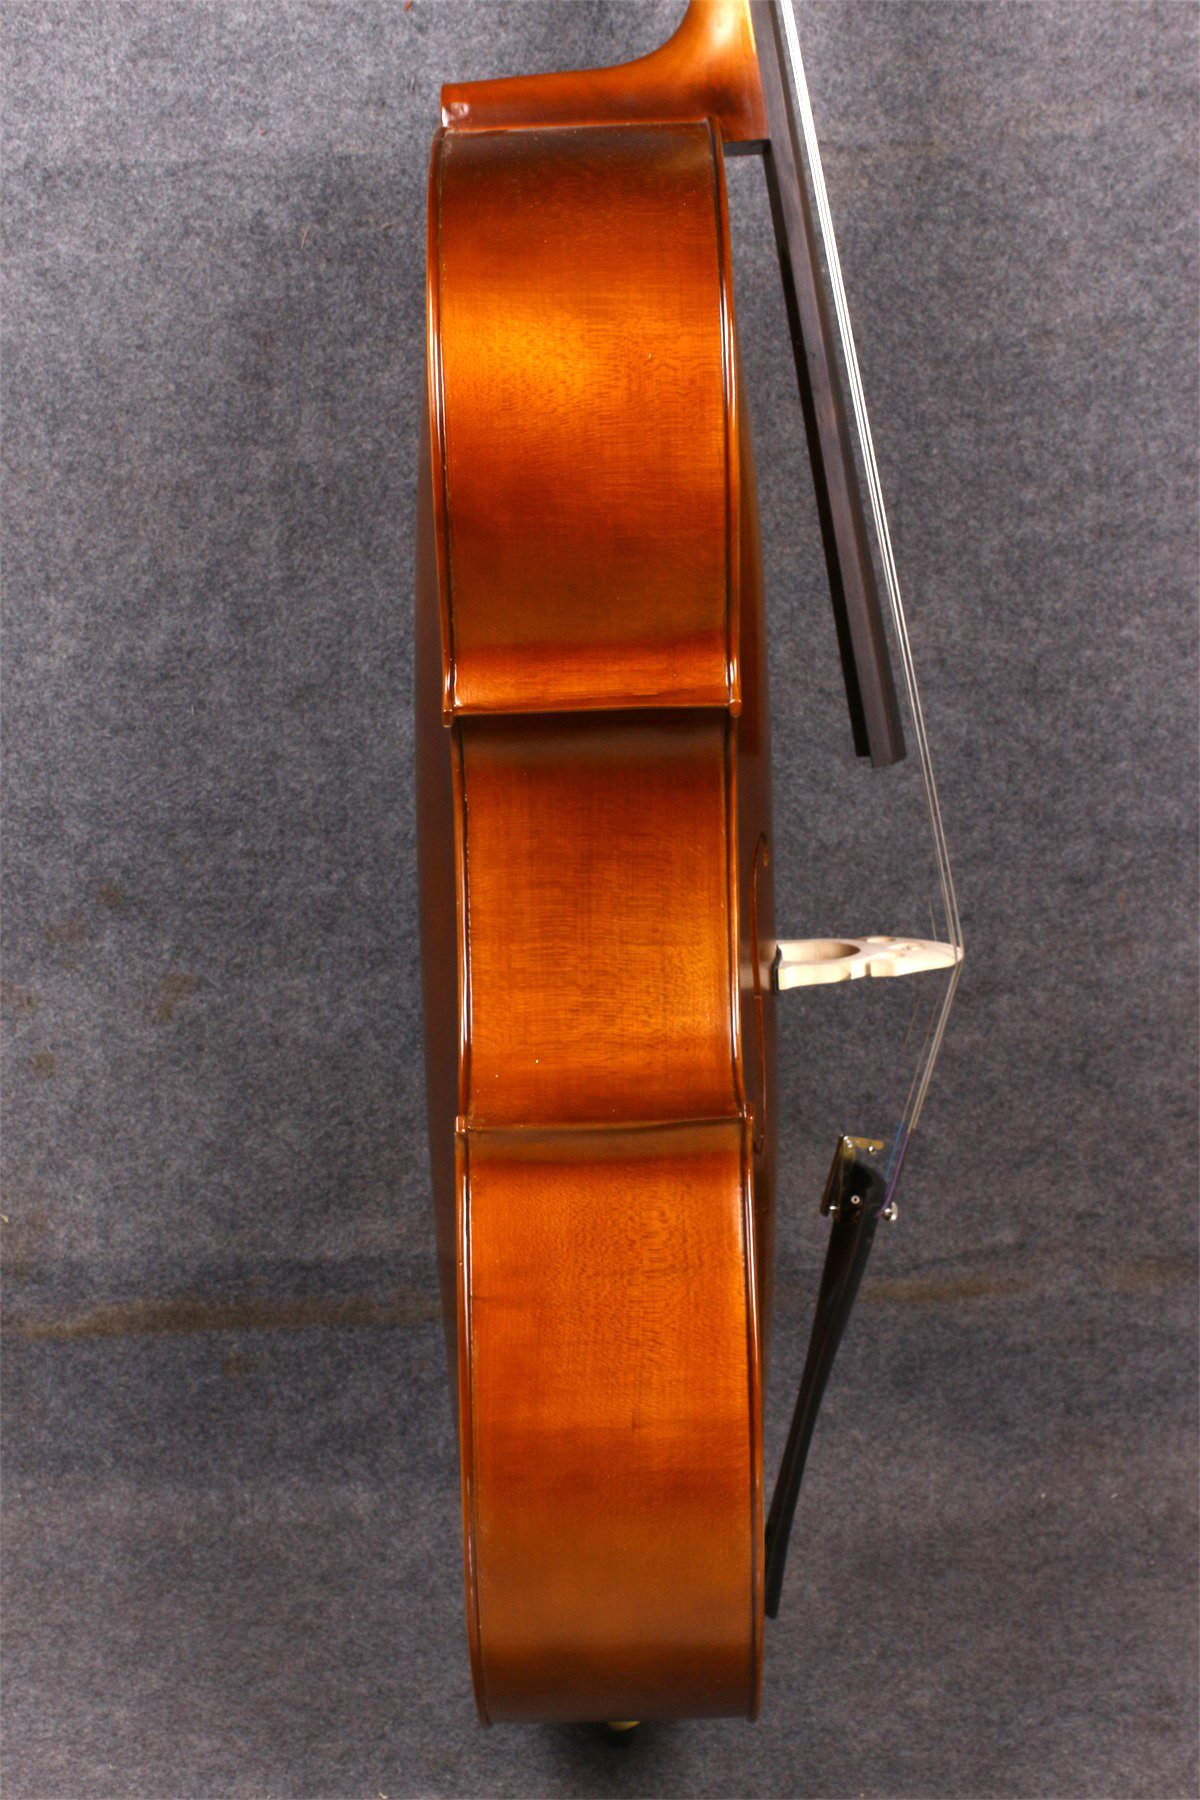 Yinfente Electric Acoustic Cello 4/4 Solid Maple Spruce wood Ebony Fittings Sweet Sound With Cello Bag Bow (Brown) by yinfente (Image #9)